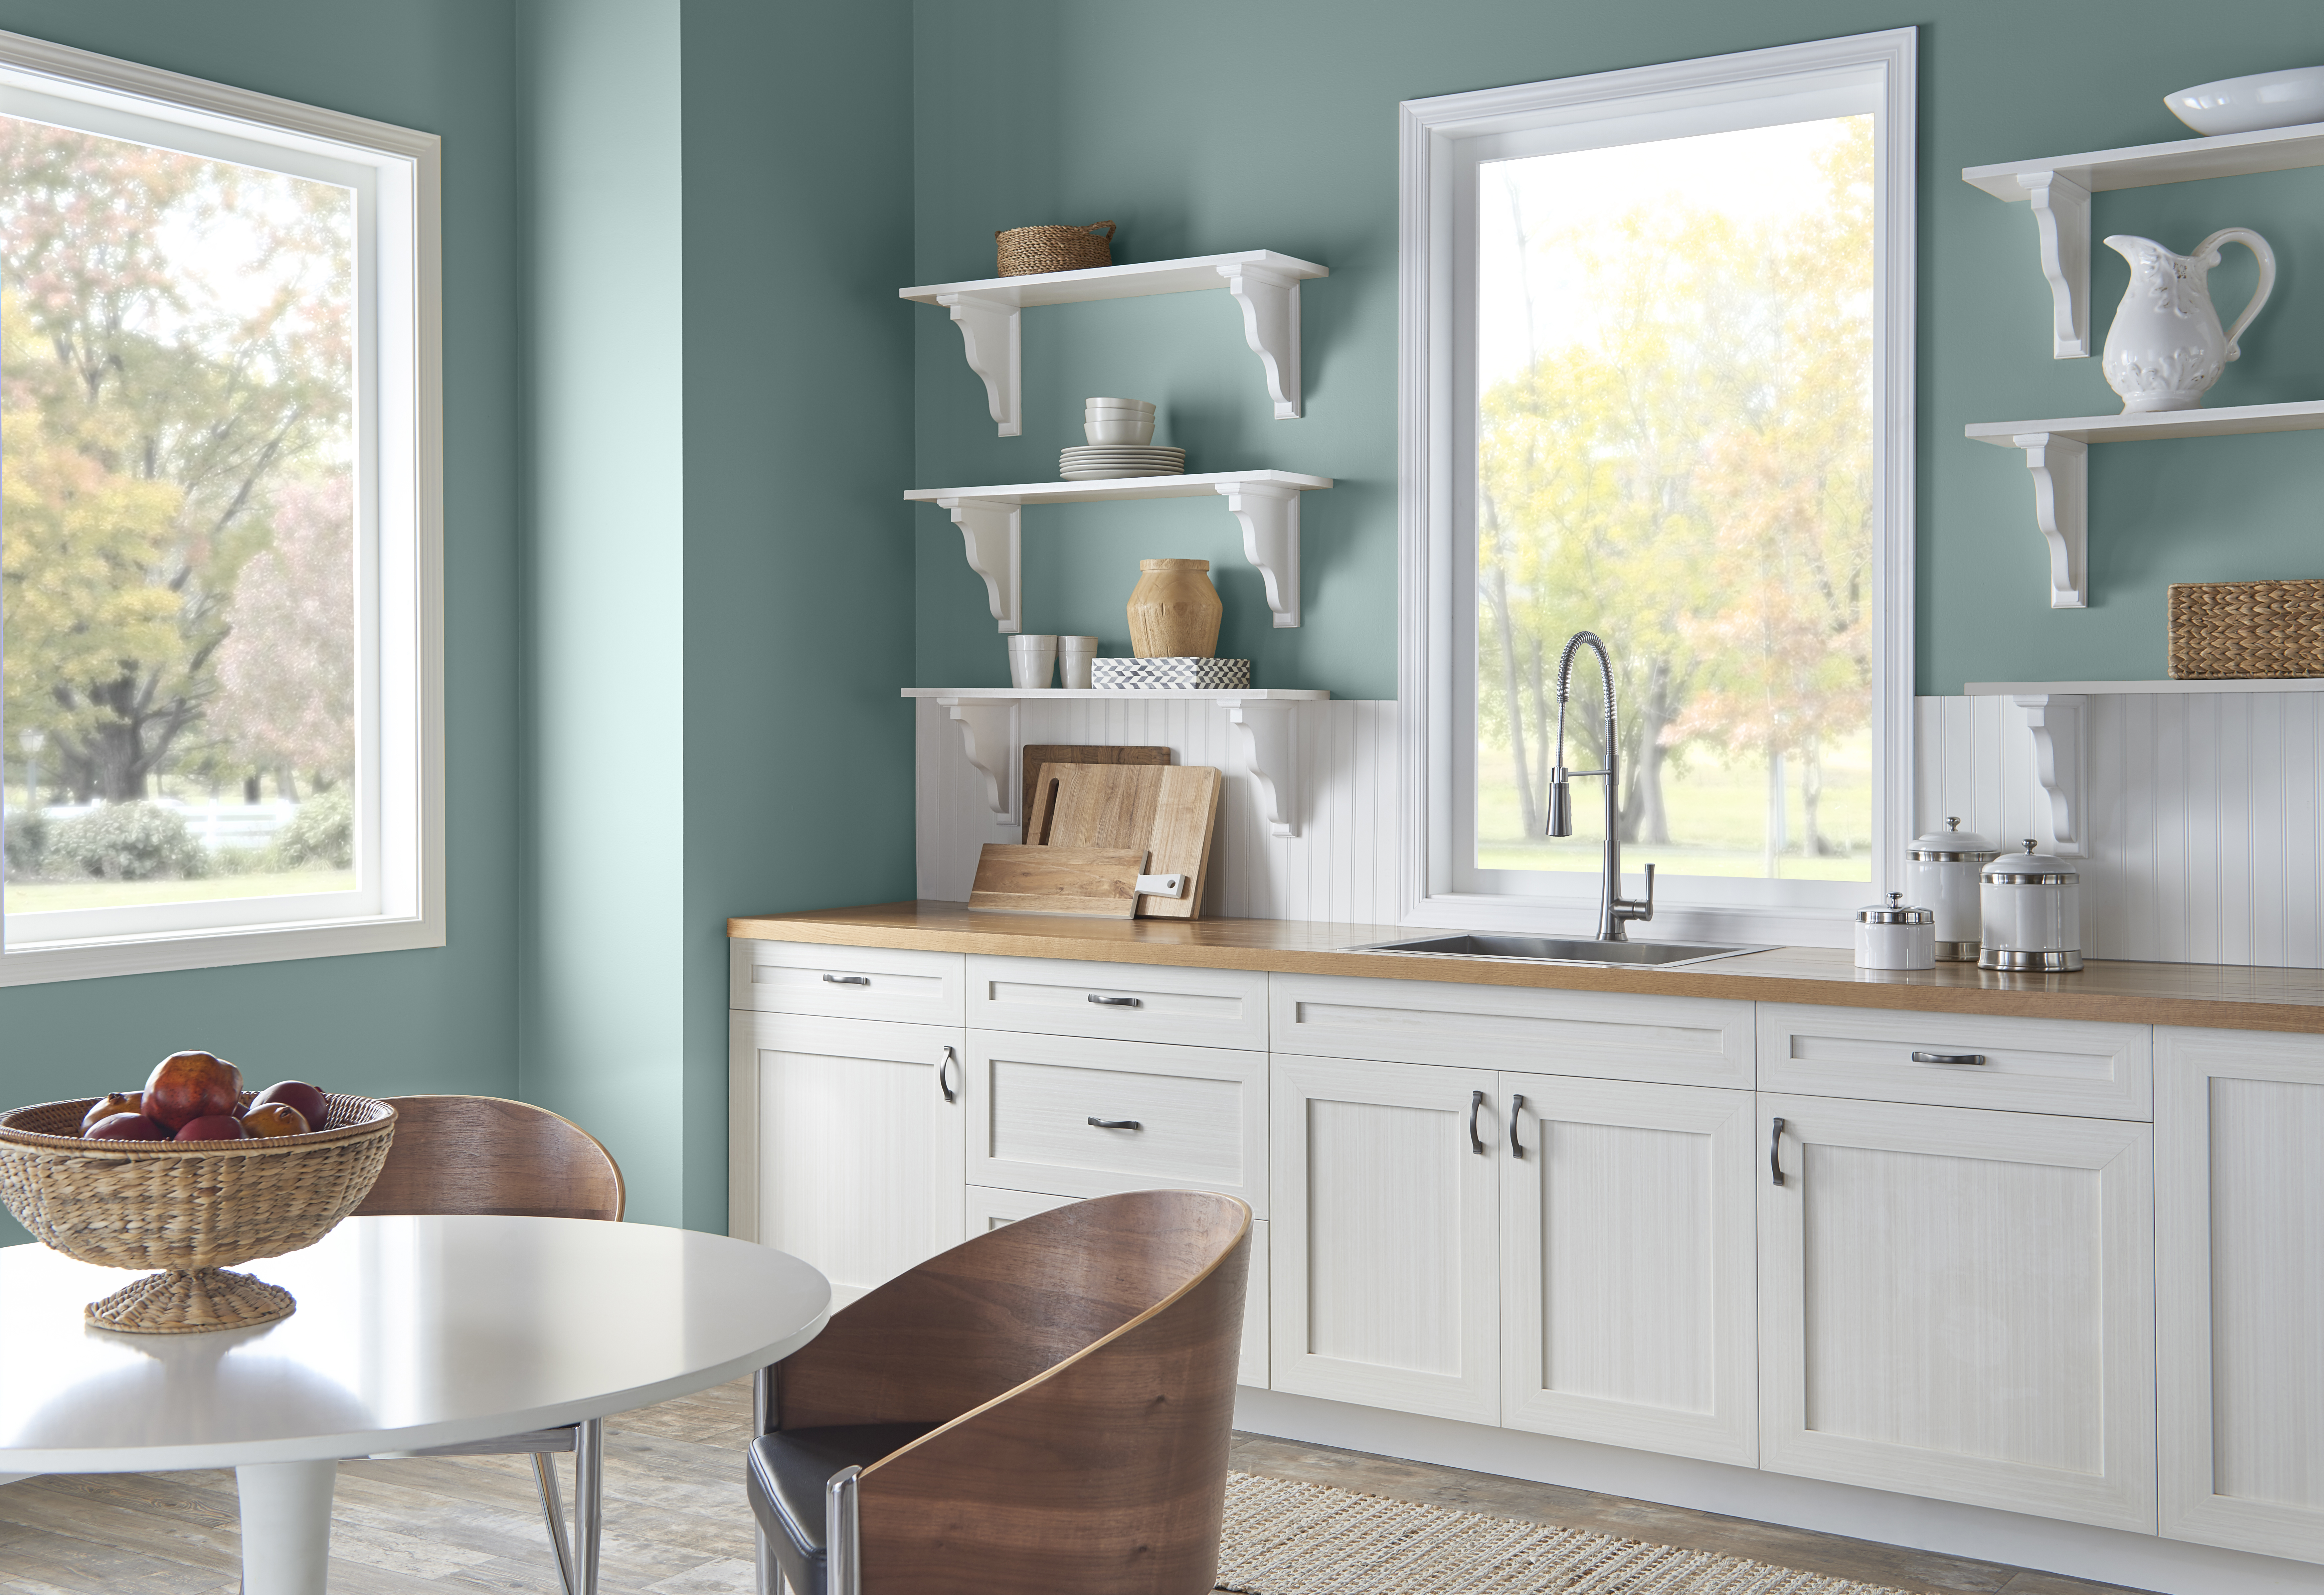 The Most Popular Interior Paint Colors This Year Real Simple within size 6959 X 4775